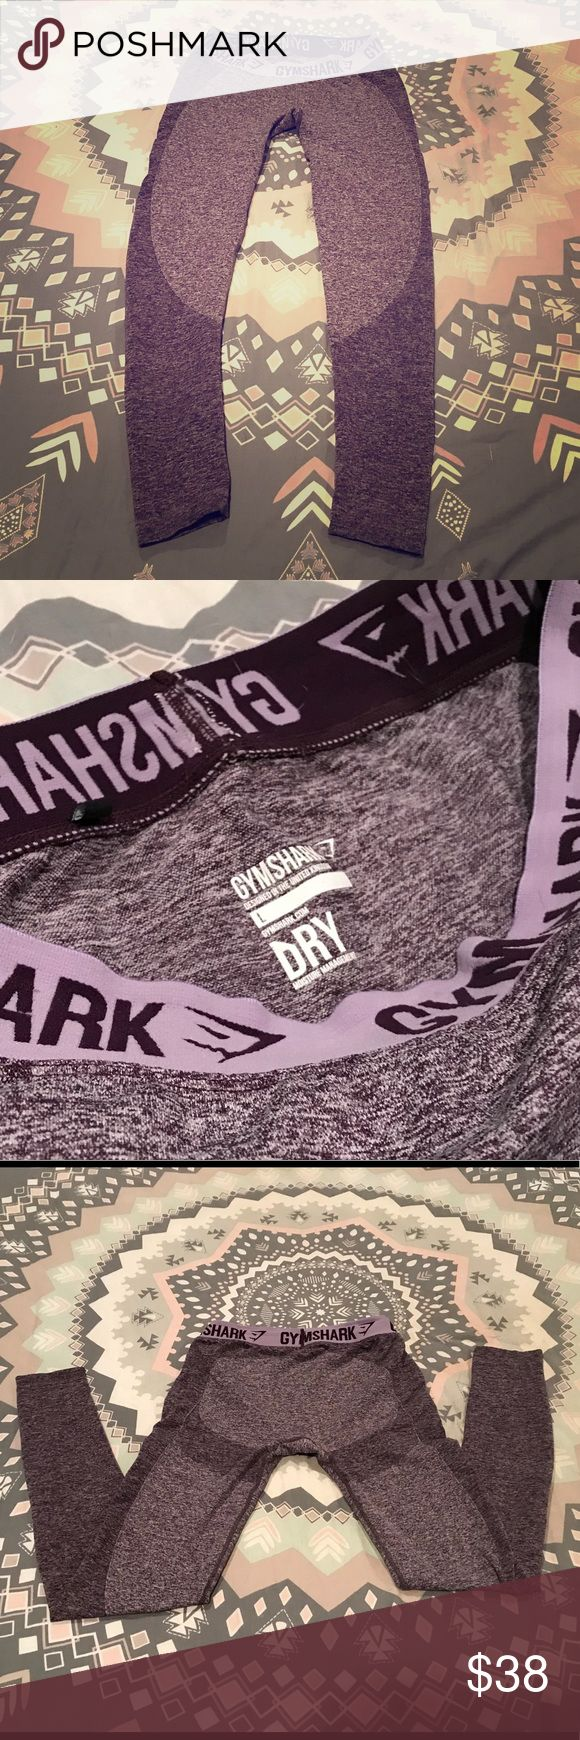 Women's Gymshark gym leggings sz Large Worn once. Washed and hung to dry. No flaws! Color is a lavender/purple tinted grey and charcoal grey with a lavender band Gymshark Pants Leggings